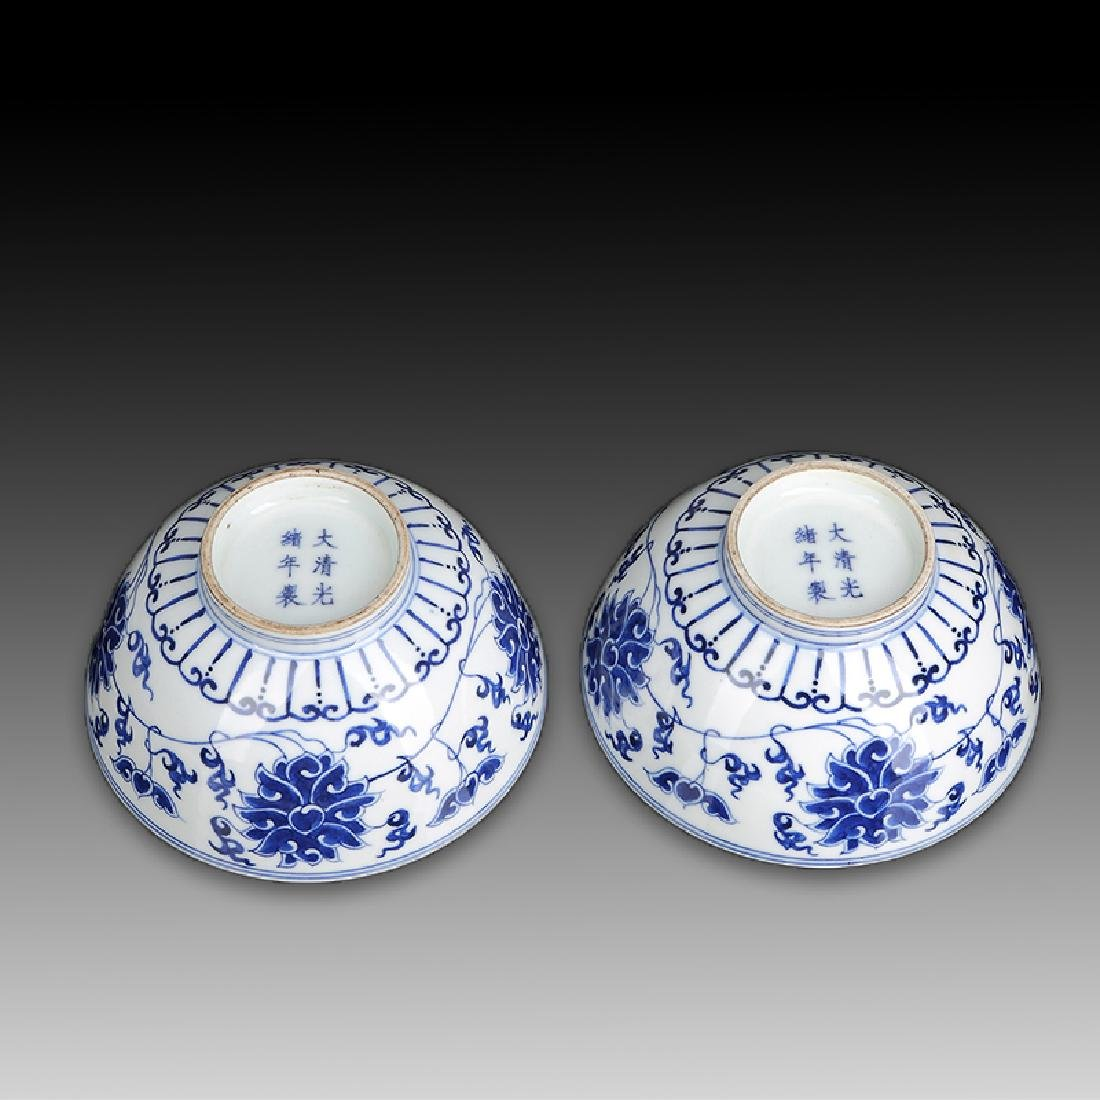 Pair of Chinese Blue And White Porcelain Bowls - 2